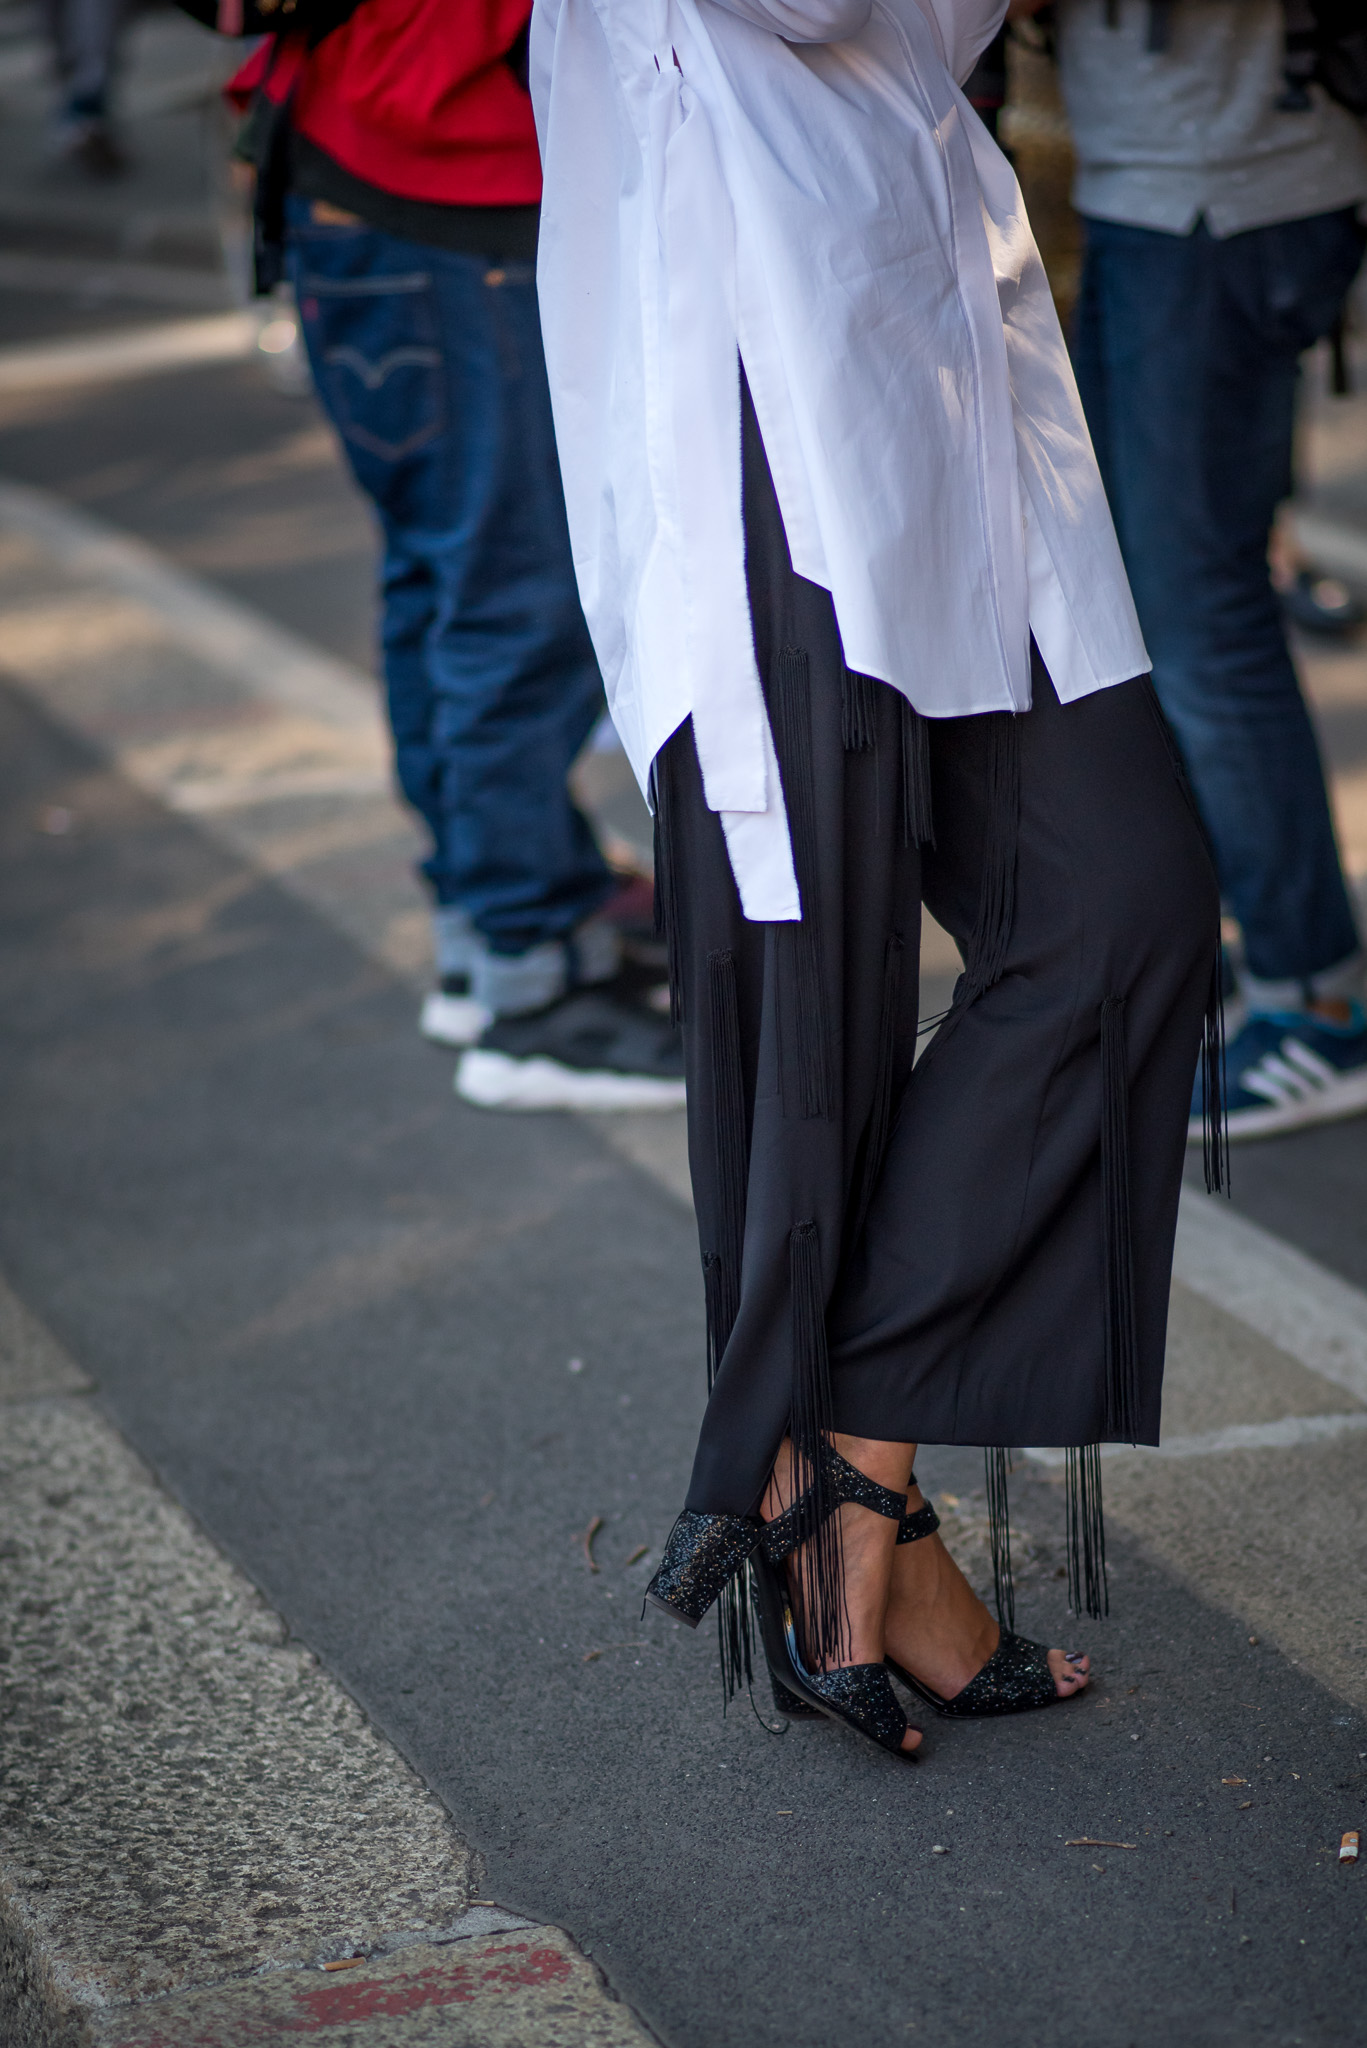 street-style_jil-sander_milan-fashion-week_sept-2016_www-annikasomething-com-11-2